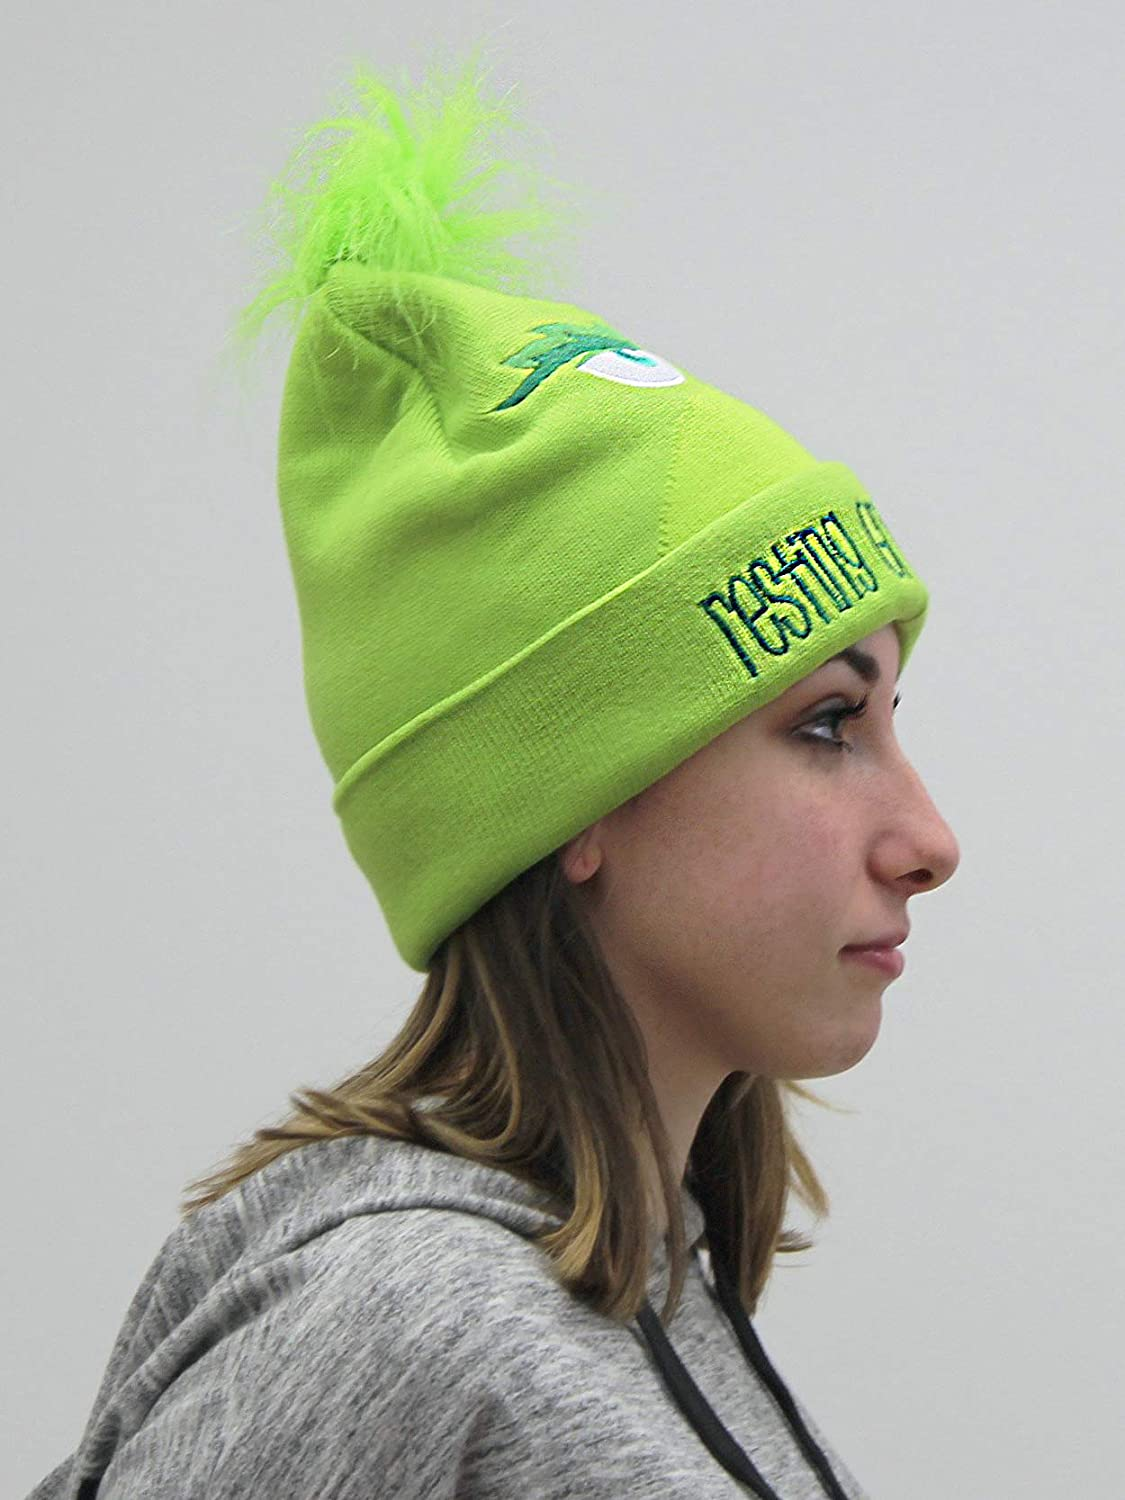 7a95ab282656b The Grinch Dr. Seuss Movie Resting Grinch Face Adult Cuffed Knit Beanie Hat  (One Size